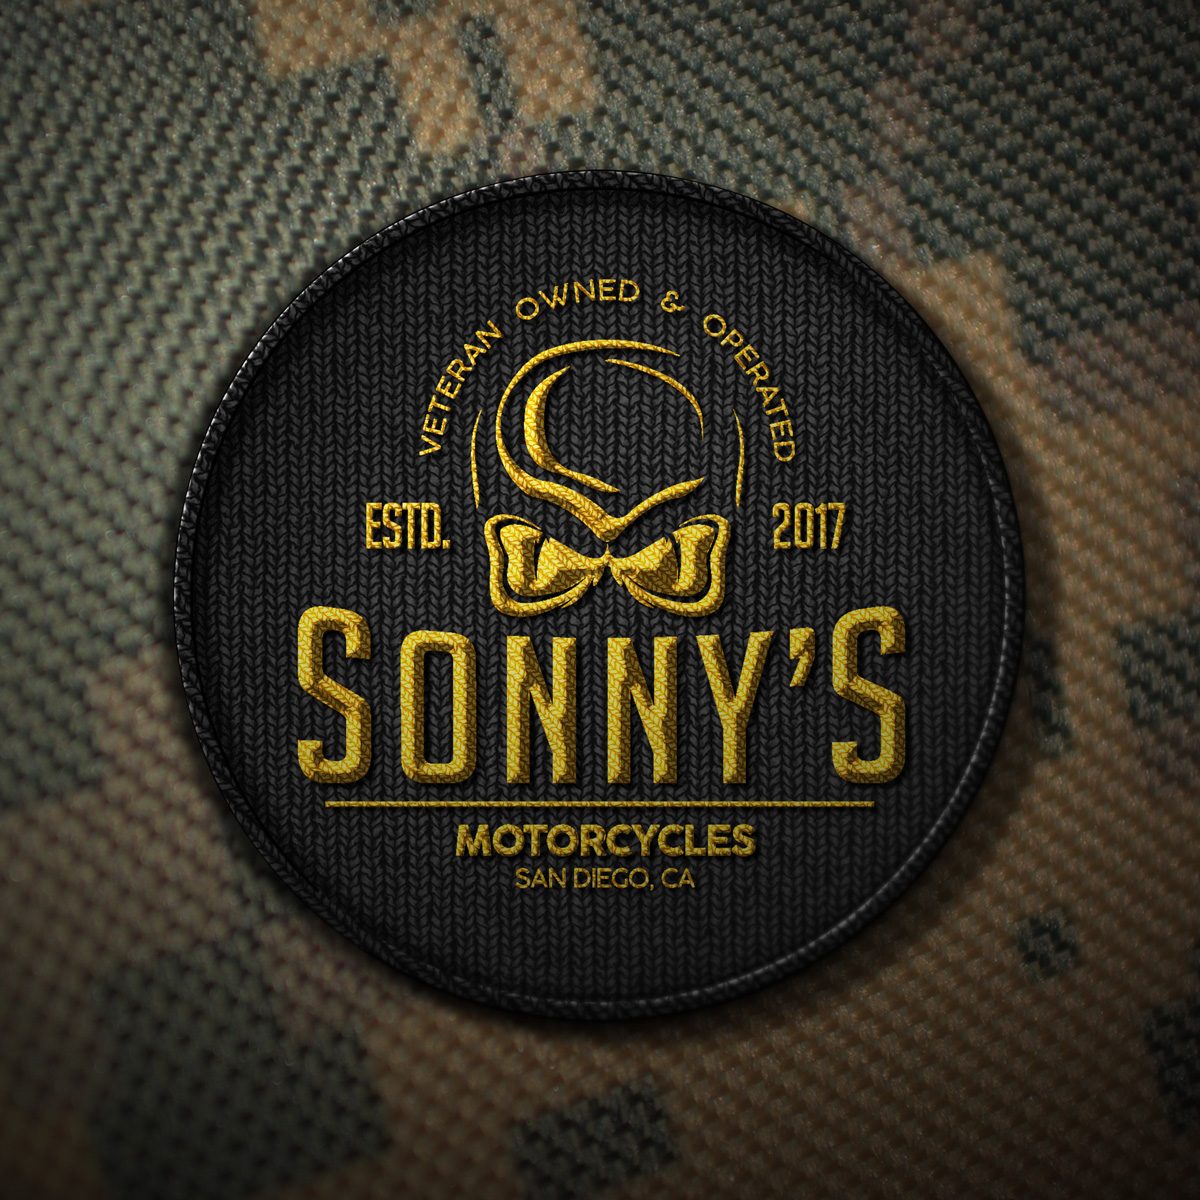 Zirkus Design | Logo Design for Veteran - Owned Businesses - Sonny's Motorcycles Camo Patch Mockup